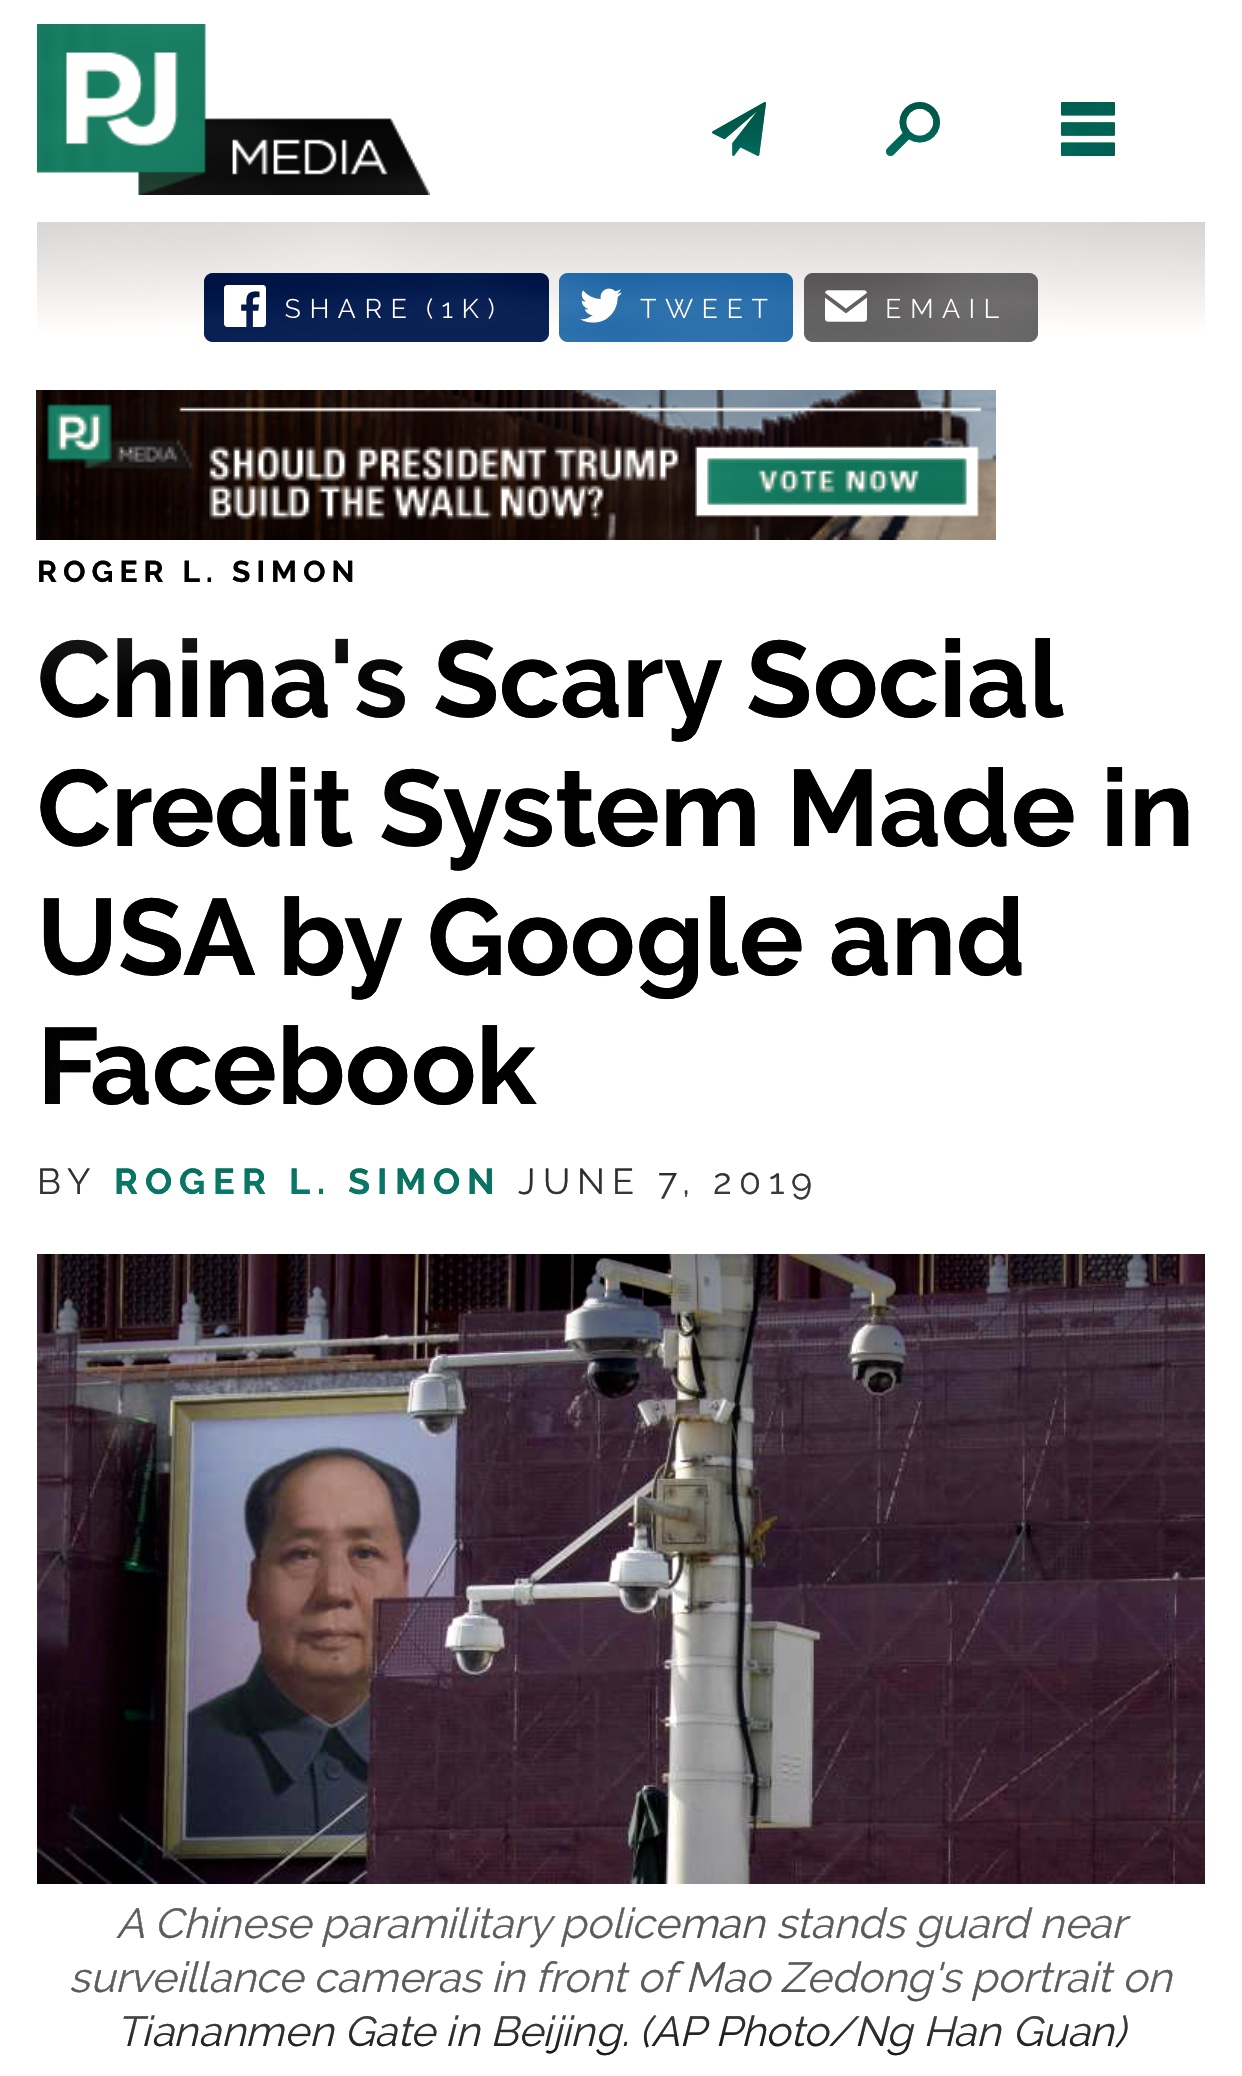 China's Scary Social Credit System Made in USA by Google and Facebook | Roger L. Simon 547 Views